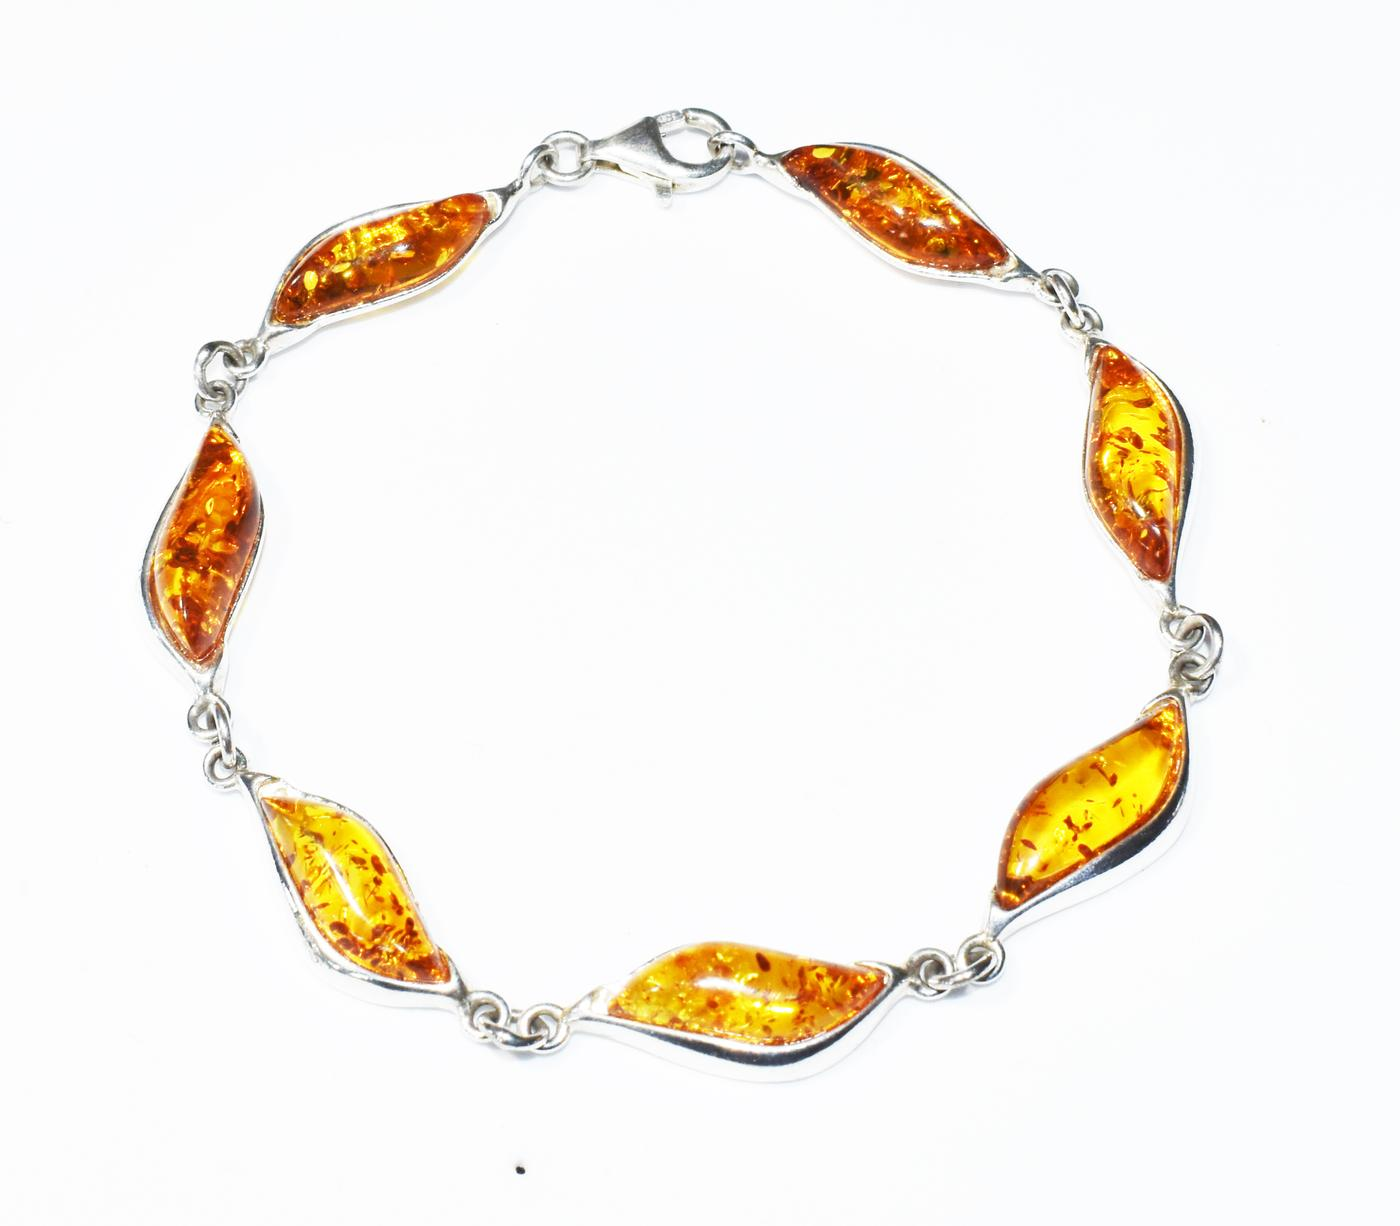 Baltic amber in cognac colour and silver bracelet in Art Deco style.